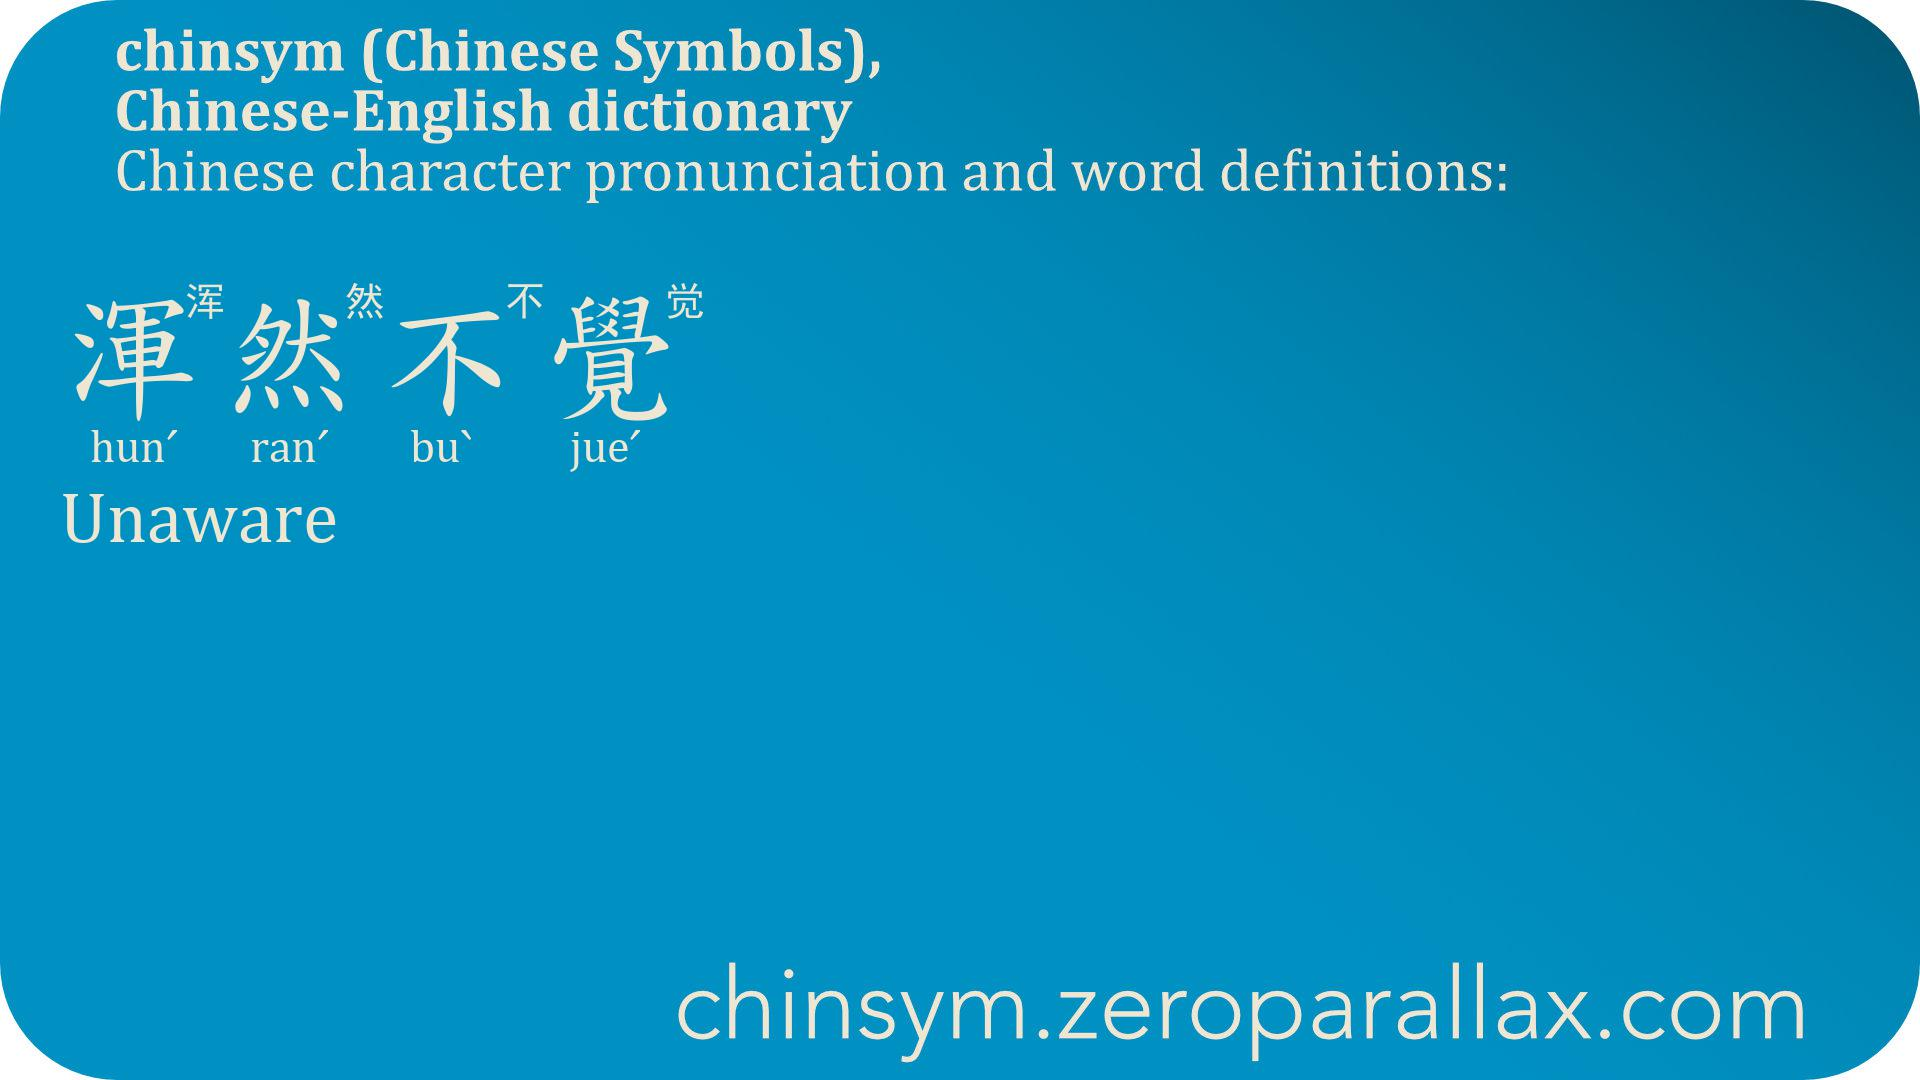 渾然不覺  (hunˊ ranˊ buˋ jueˊ) 浑然不觉 : Unaware, Oblivious, Unknowing. chinsym.zeroparallax.com